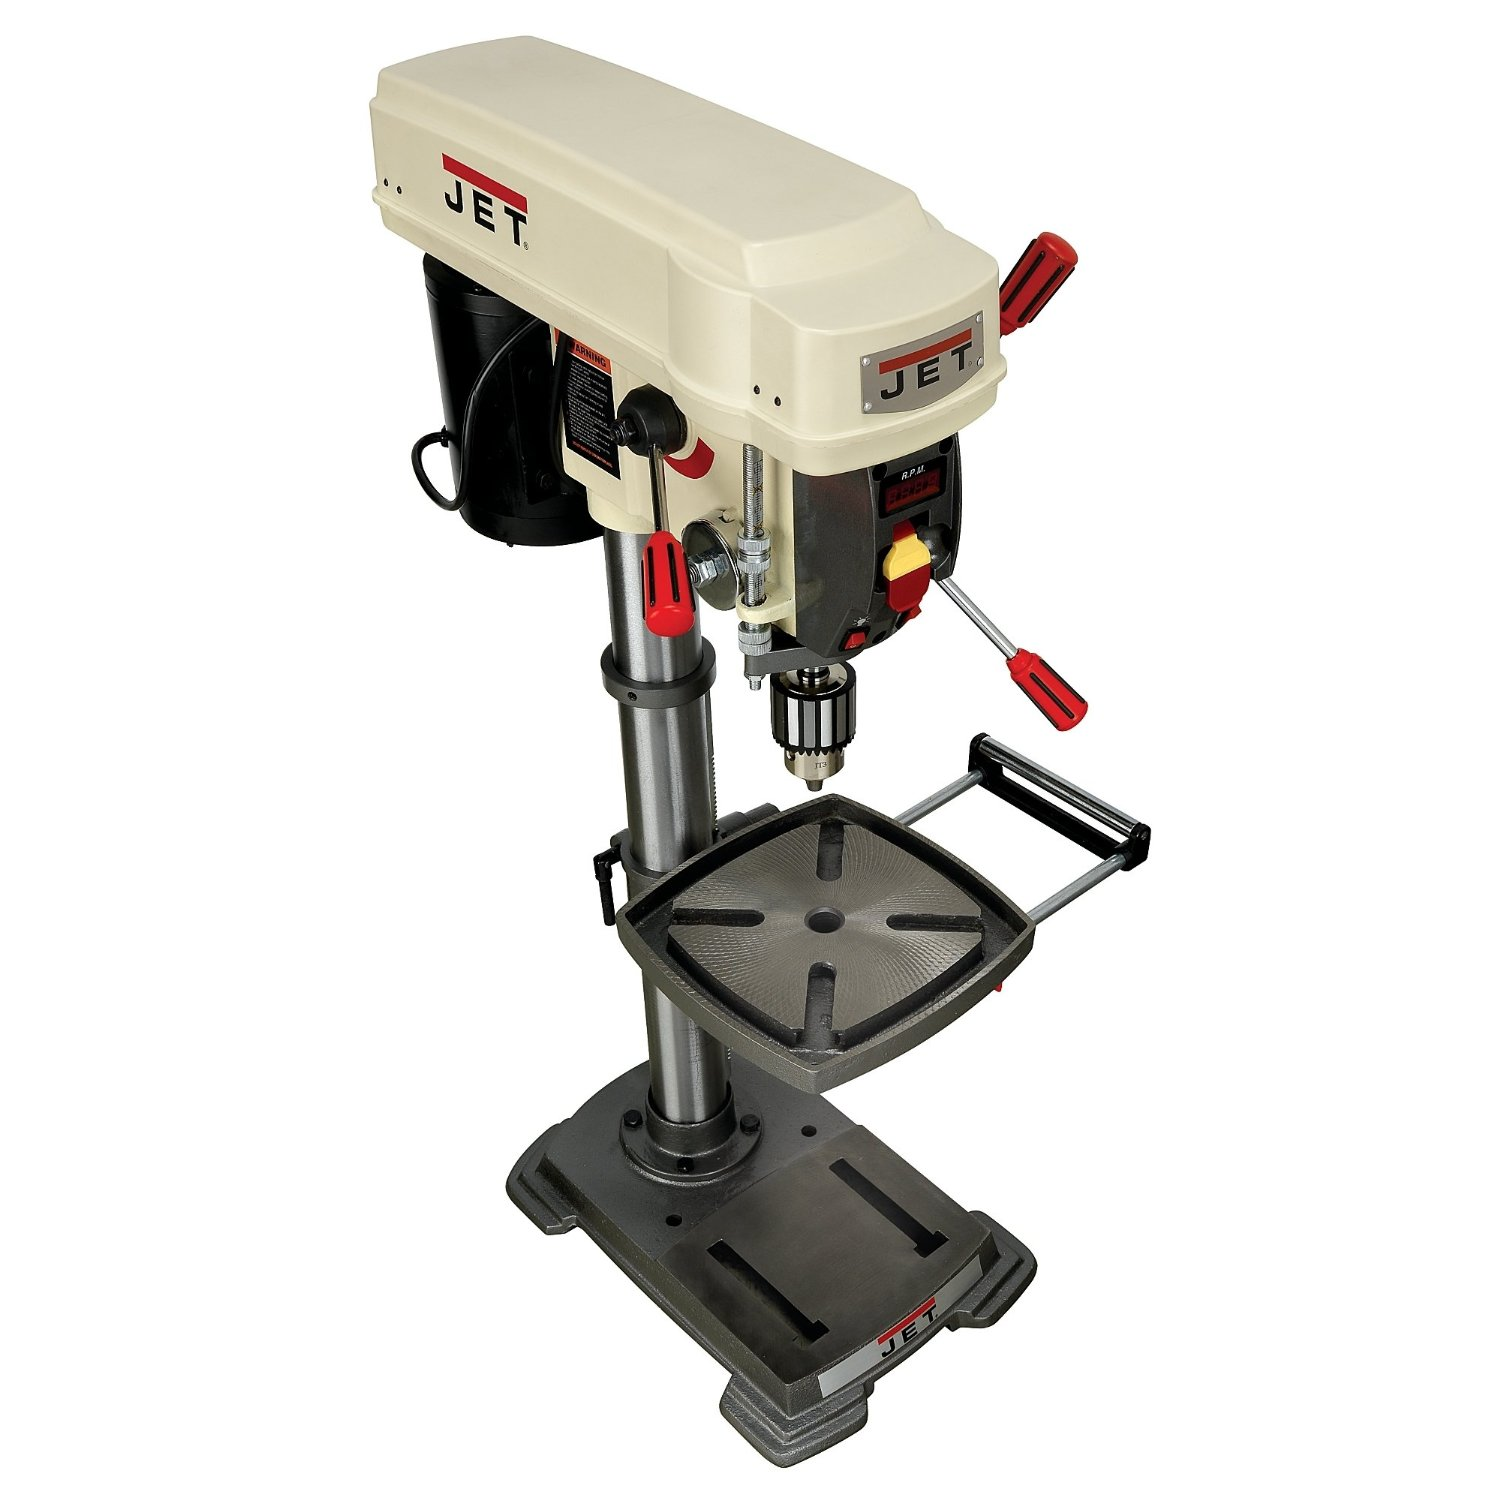 Best 10 Benchtop Drill Press Tools Unbiased Reviews 2018